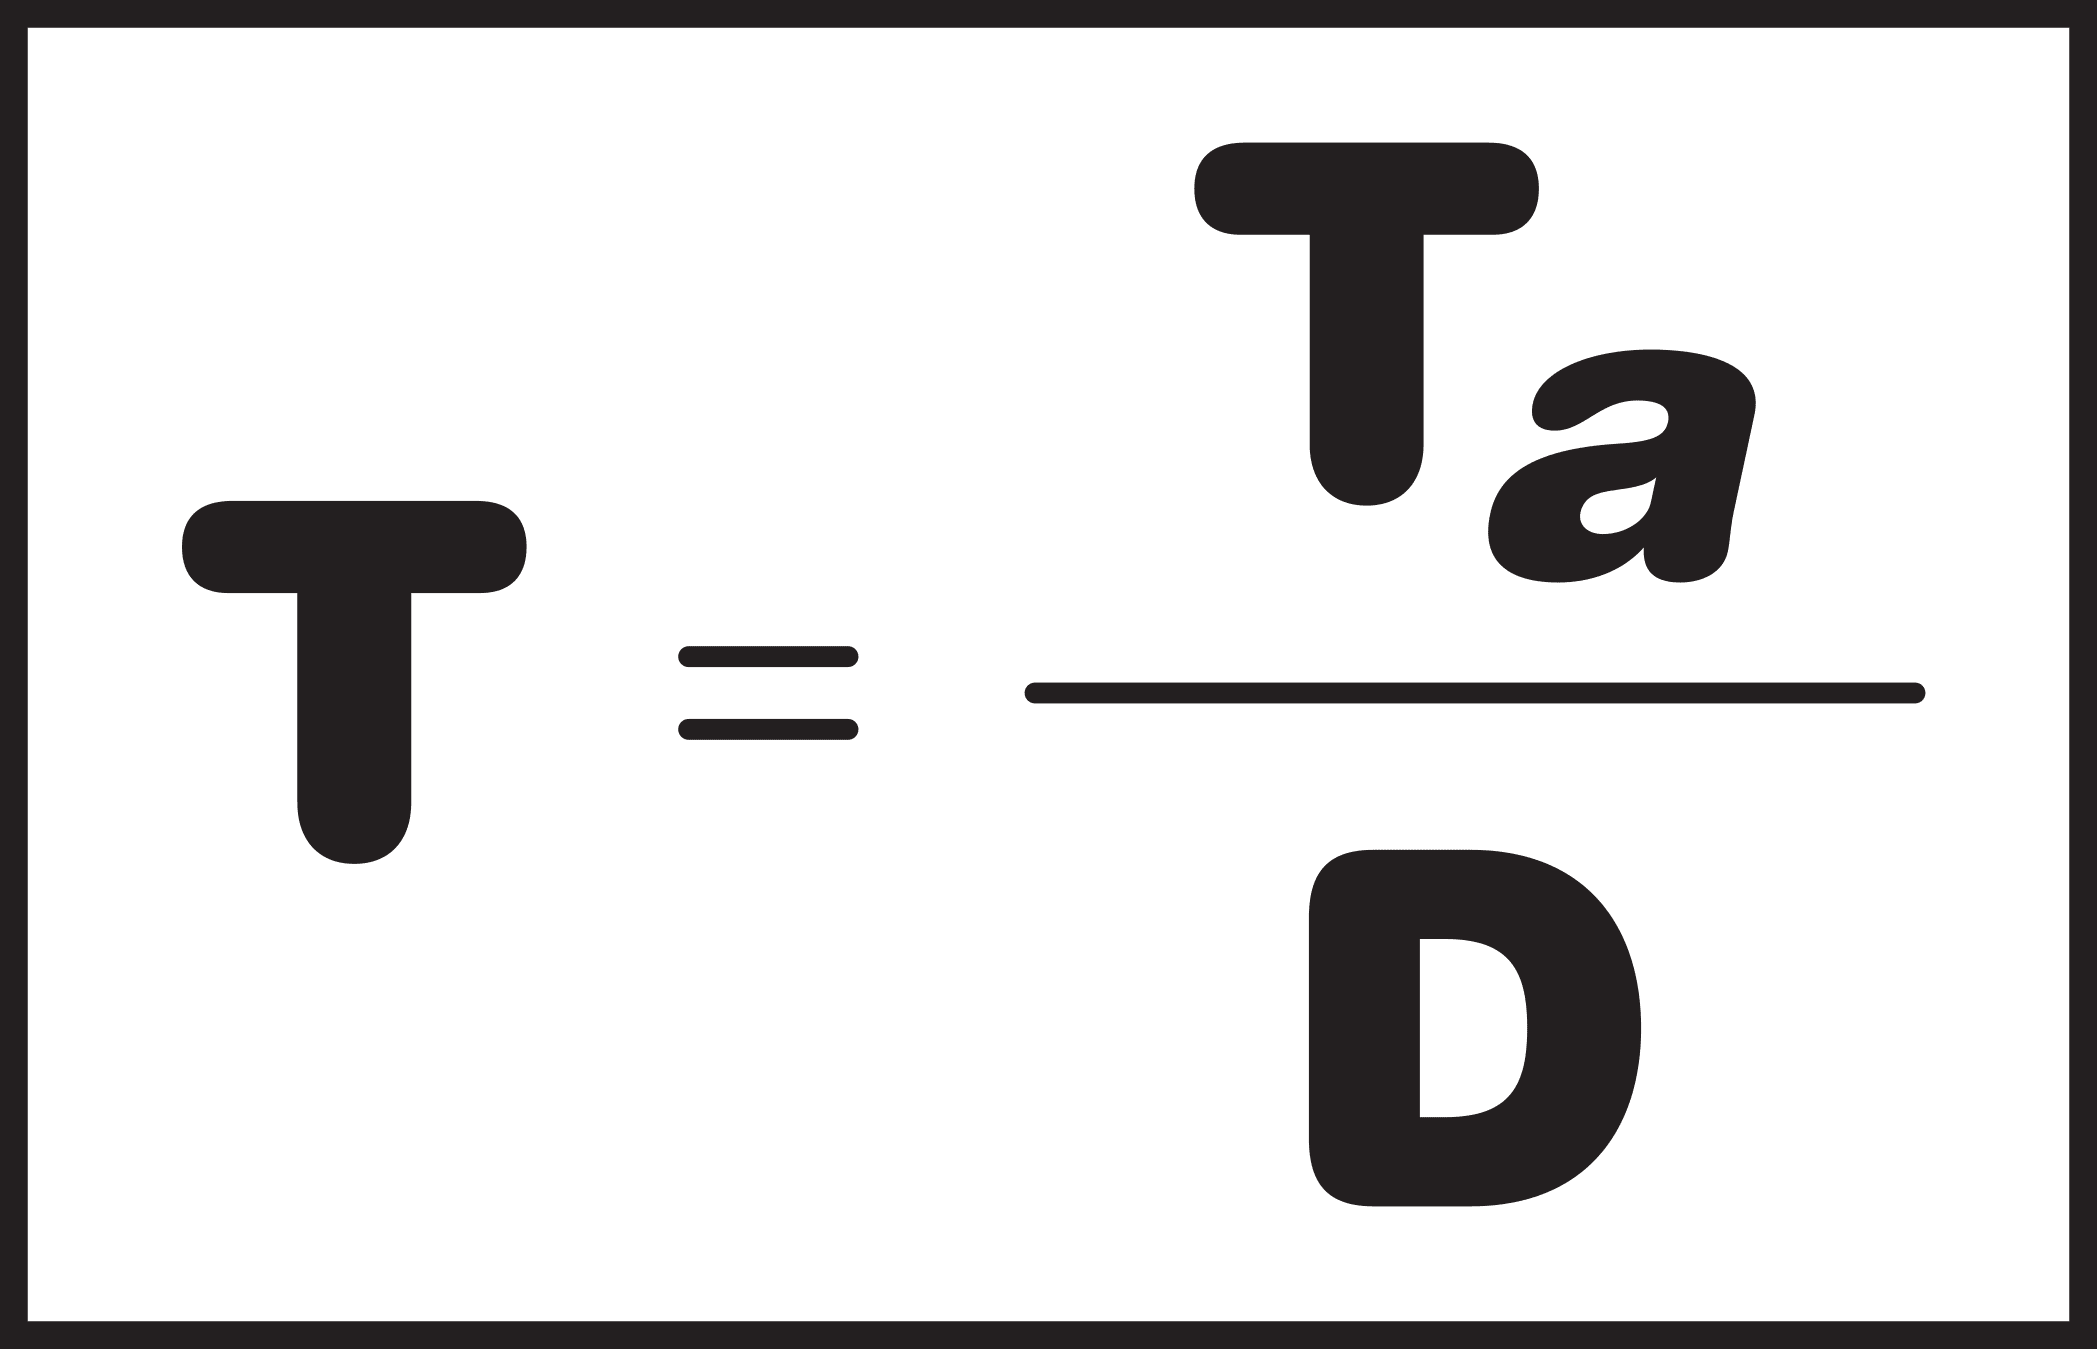 The formula for takt time is T = Ta divided by D.